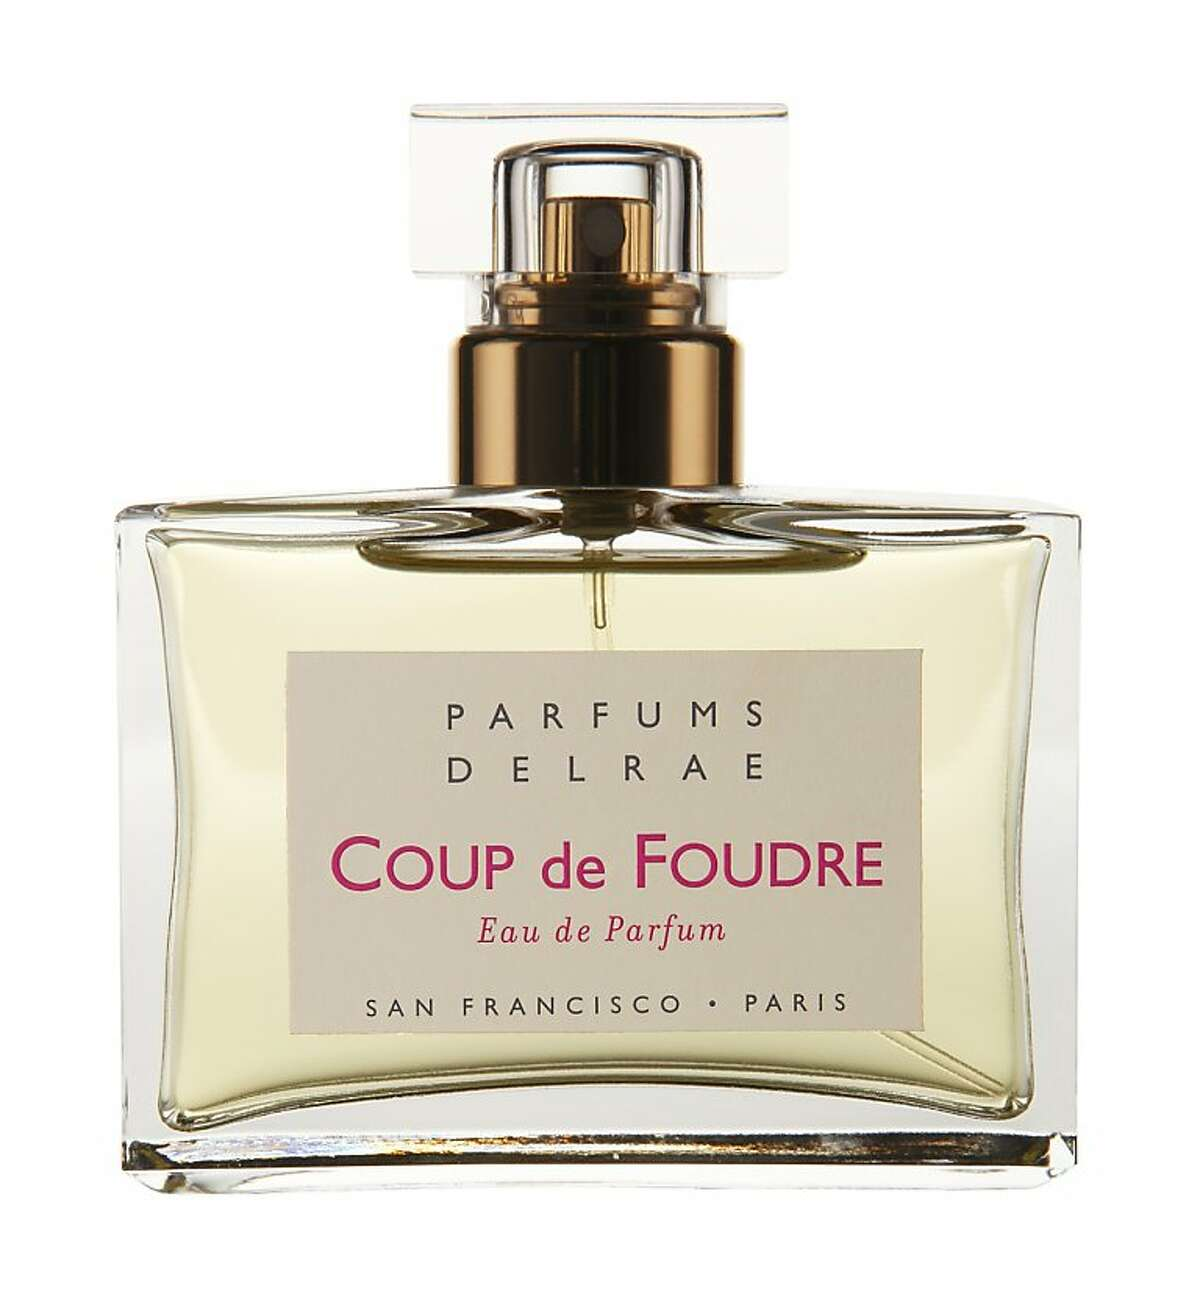 Coup de Foudre by Parfums DelRae: Available at Barneys, this is one of my favorite perfumes. Parfums DelRae is the brainchild of San Francisco designer DelRae Roth. Her perfumes are made in the south of France using rare essences in the grand tradition of classic French perfumery. Though classic by inspiration, the scents are bursting with youth, invention and intrigue. (www.parfumsdelrae.com)